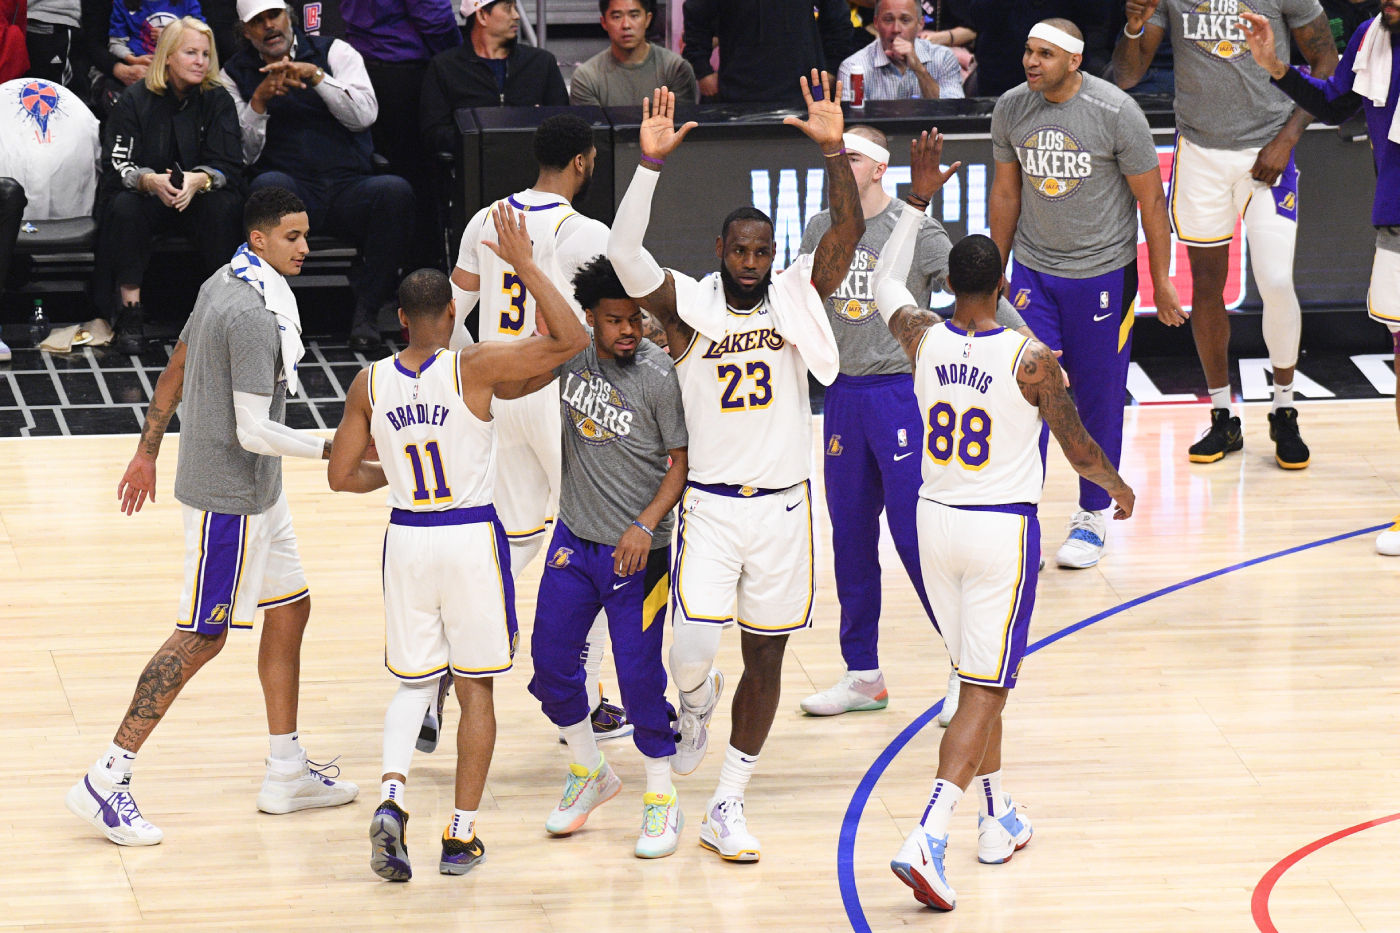 While the Los Angeles Lakers prepare to resume their season, one Lakers player not named LeBron James or Anthony Davis is dominating.